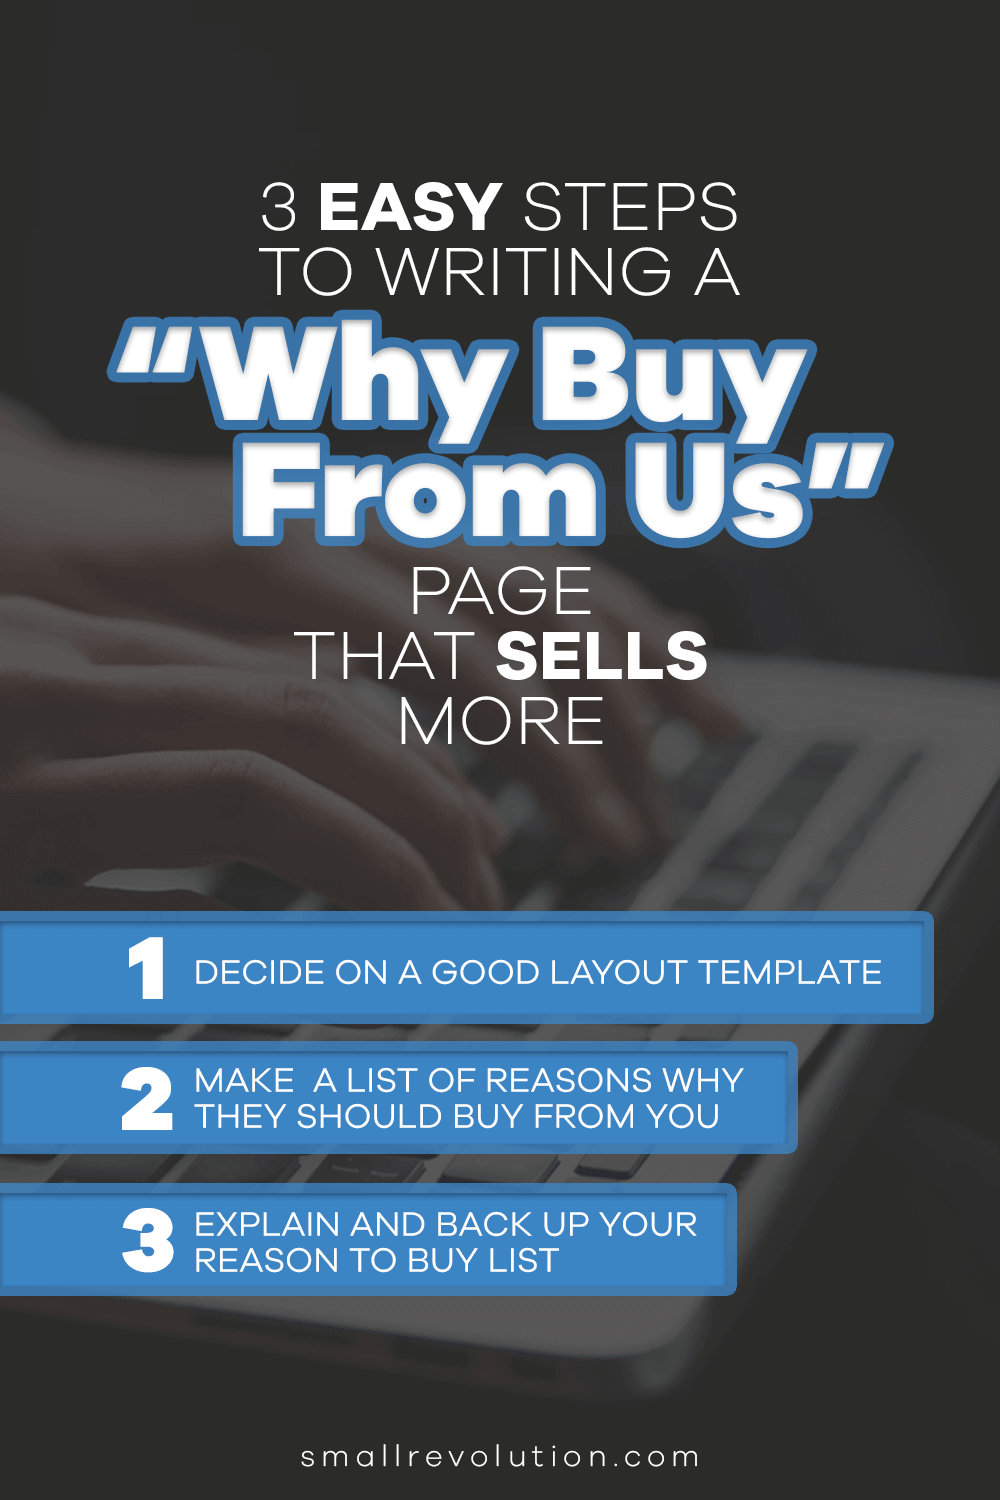 3 Easy Steps to Writing a Why Buy From Us Page that Sells More